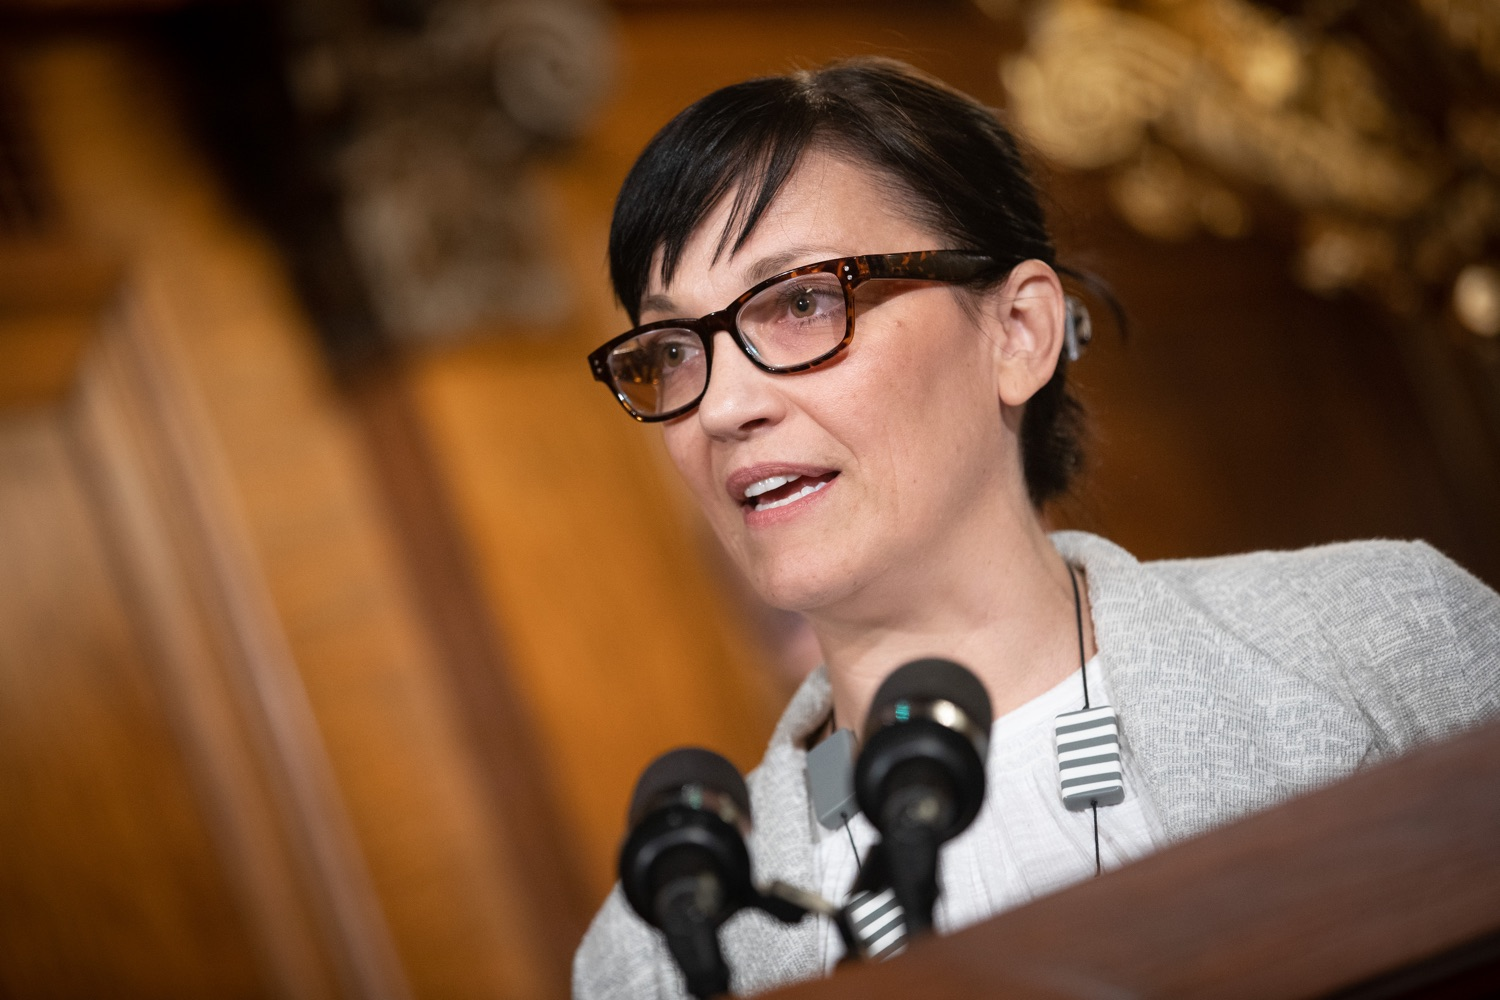 "<a href=""http://filesource.abacast.com/commonwealthofpa/photo/17554_gov_voter_reform_bill_dz_009.jpg"" target=""_blank"">⇣ Download Photo<br></a>Harrisburg, PA.  Elizabeth Randol, Legislative Director of the ACLU speaking at the bill signing. Governor Wolf made voting more convenient and secure by signing Act 77 of 2019, the most significant improvement to Pennsylvanias elections in more than 80 years. The bipartisan compromise legislation takes effect for the April 2020 primary election and makes Pennsylvania a national leader with voter-friendly election reforms."